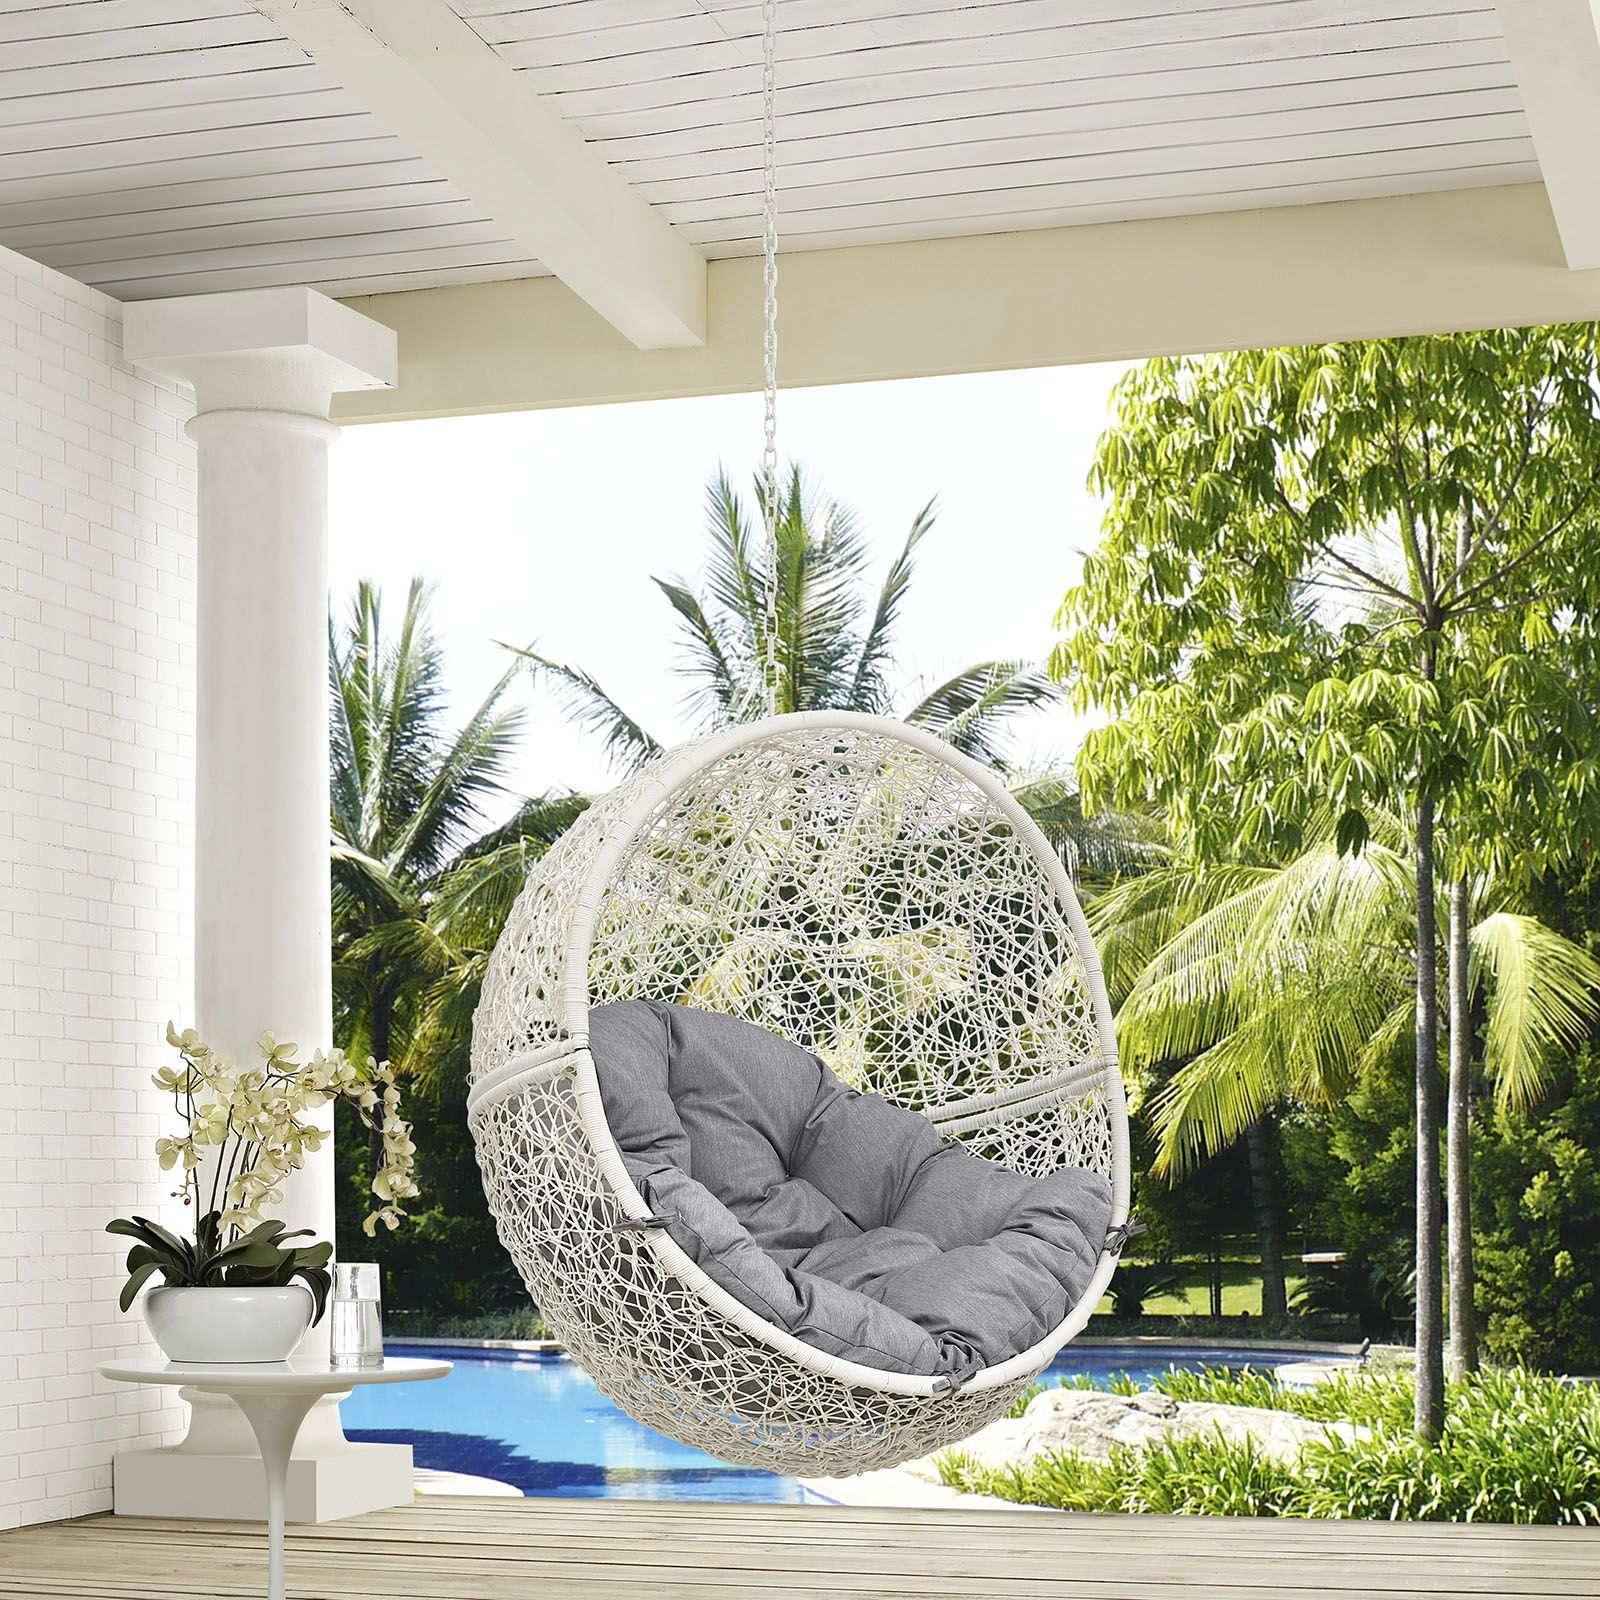 hide outdoor patio swing chair with stand white gray escape to an